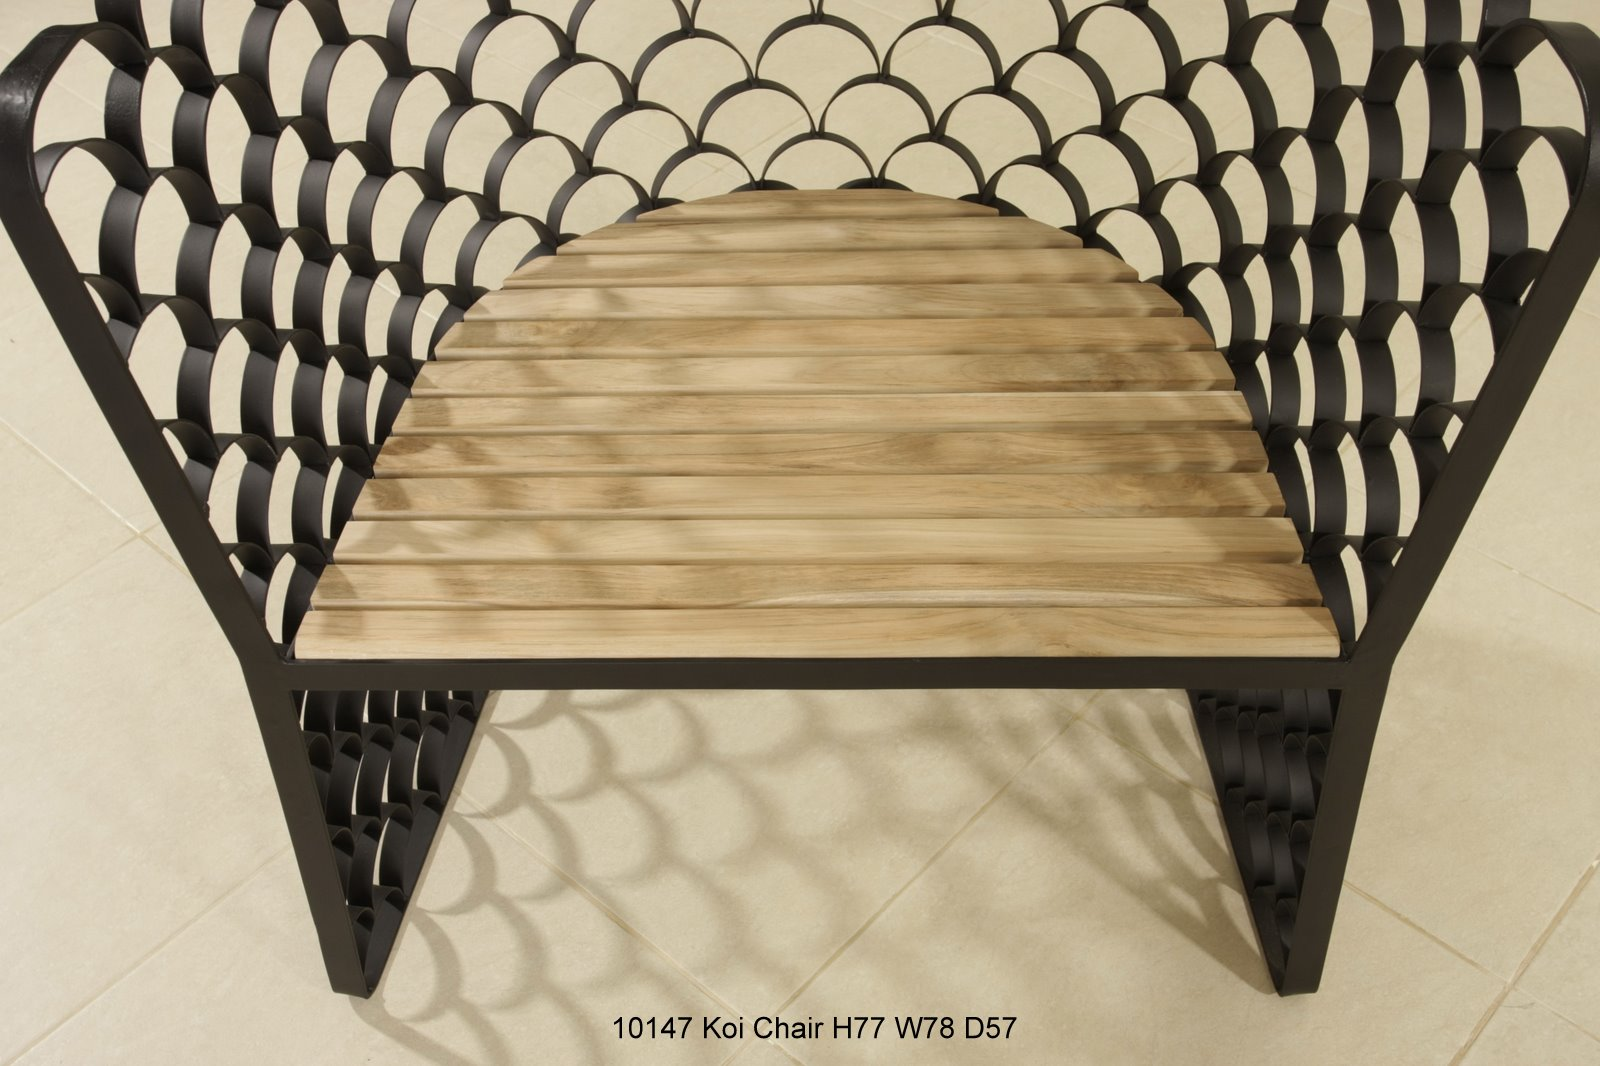 Koi chair_11.jpg